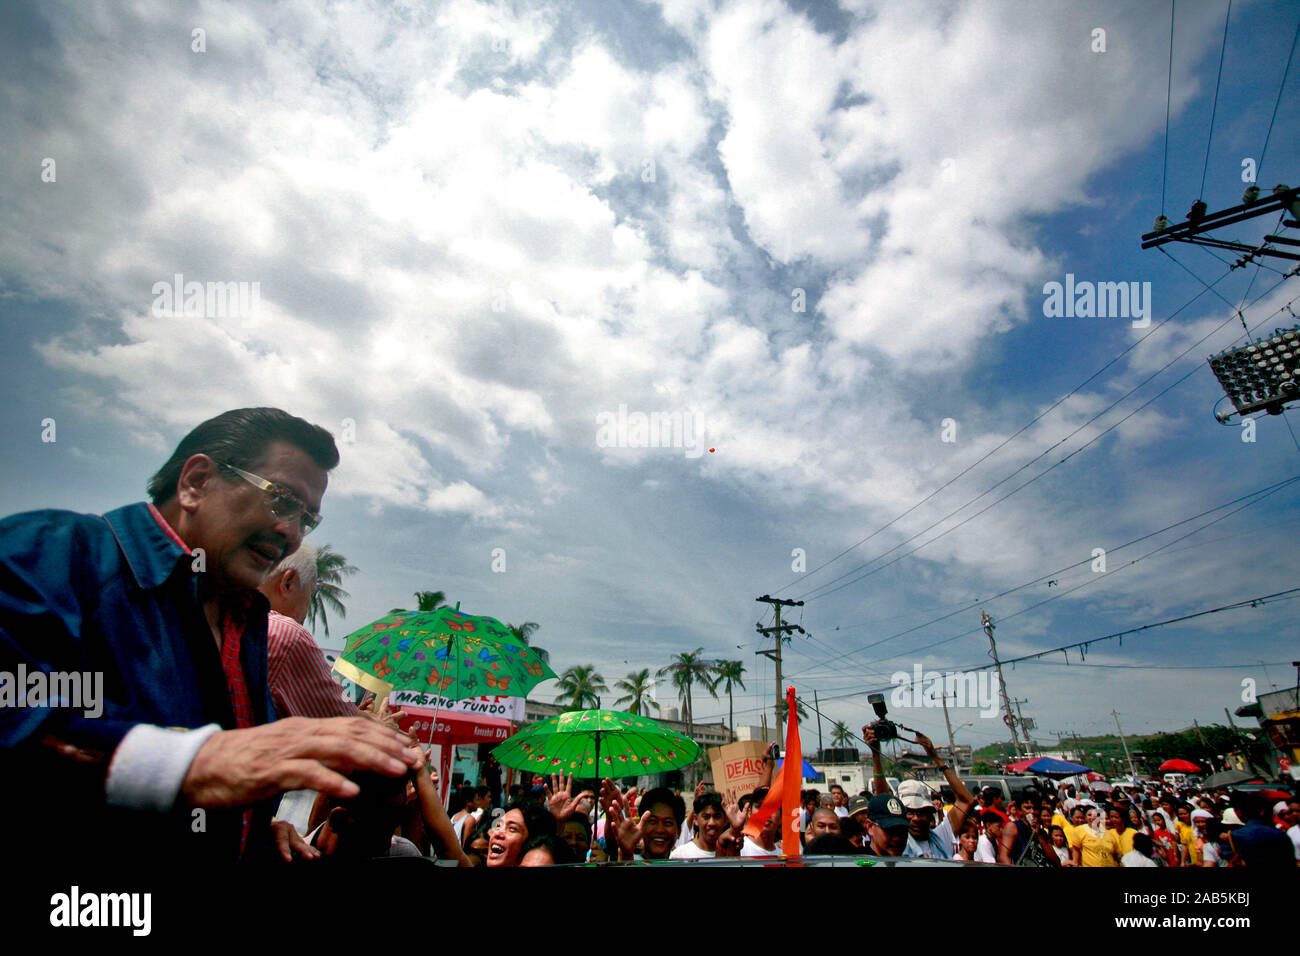 """Former president of the Philippines,  Joseph """"Erap"""" Estrada, visits Tondo as supporters welcomes him warmly. The ex-president was disposed and jailed due to charges of corruption, but was pardoned recently by current President Gloria Macapagl Arroyo. Tongo, Philipines. November 03, 2007. Stock Photo"""